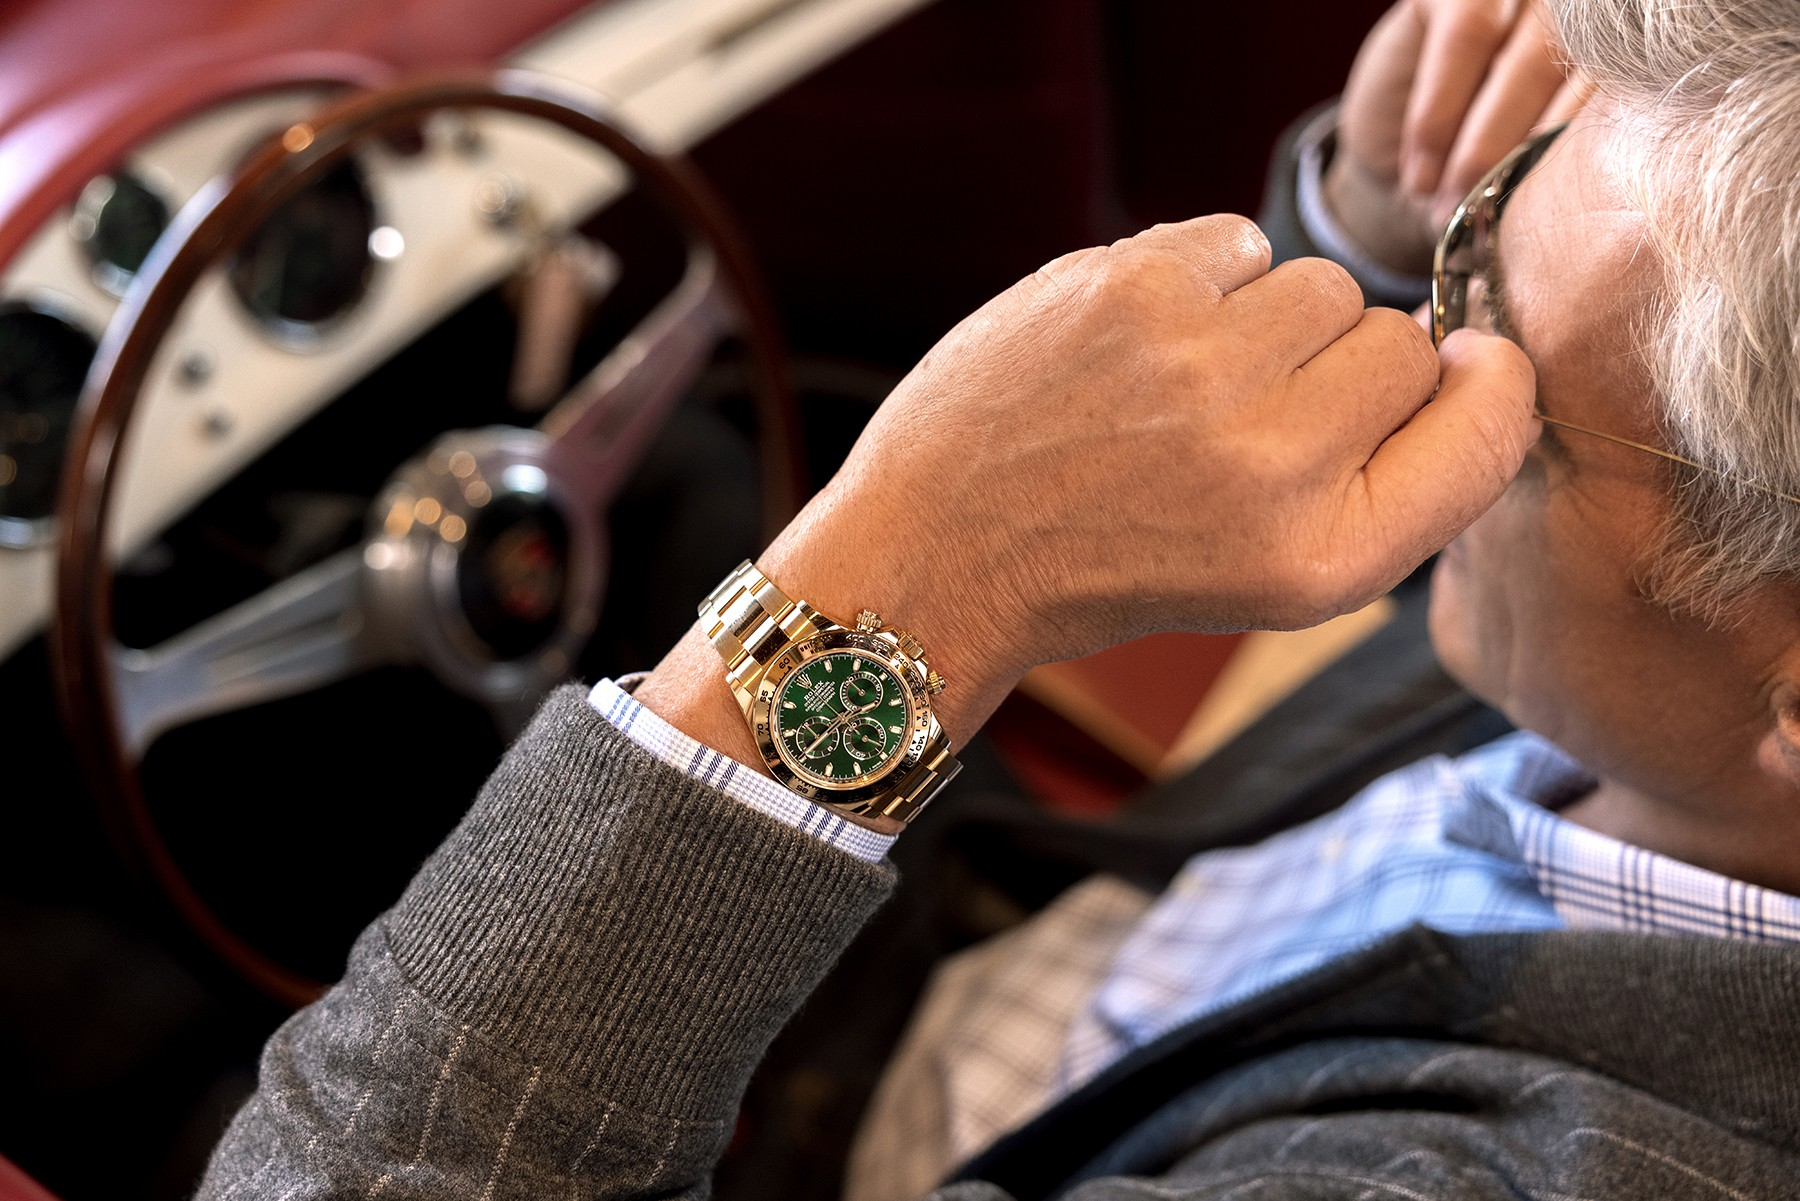 Bob's Watches, World's Leading Online Marketplace for Luxury Watches